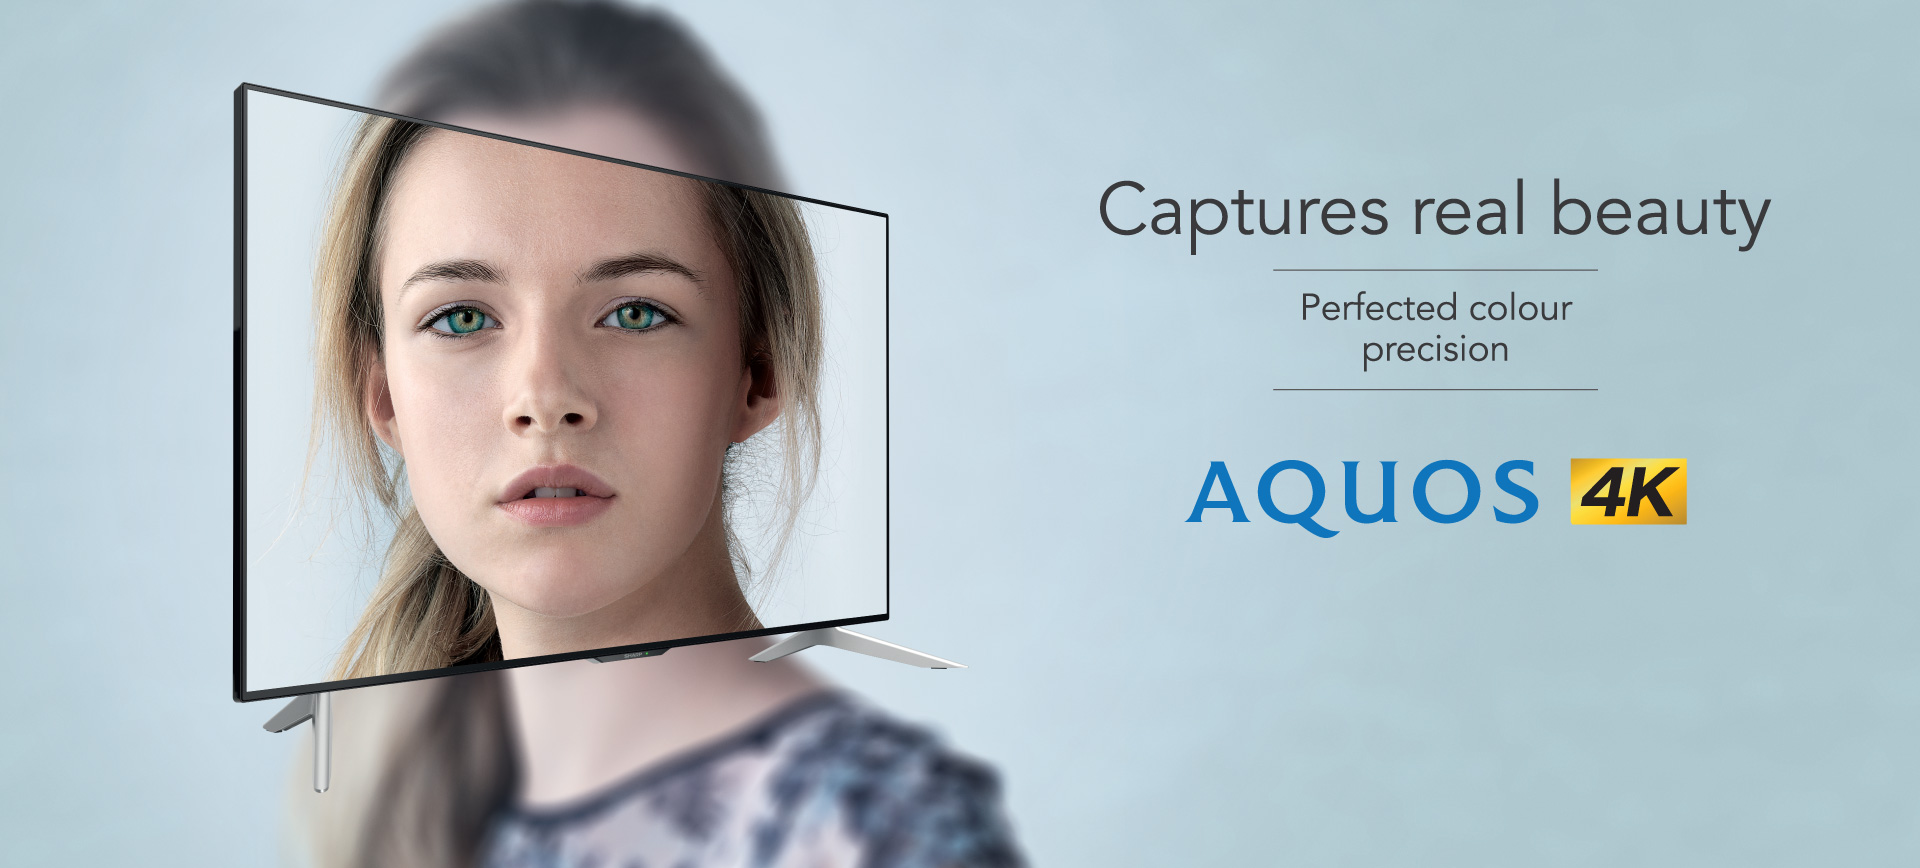 AQUOS 4K Captures Real Beauty